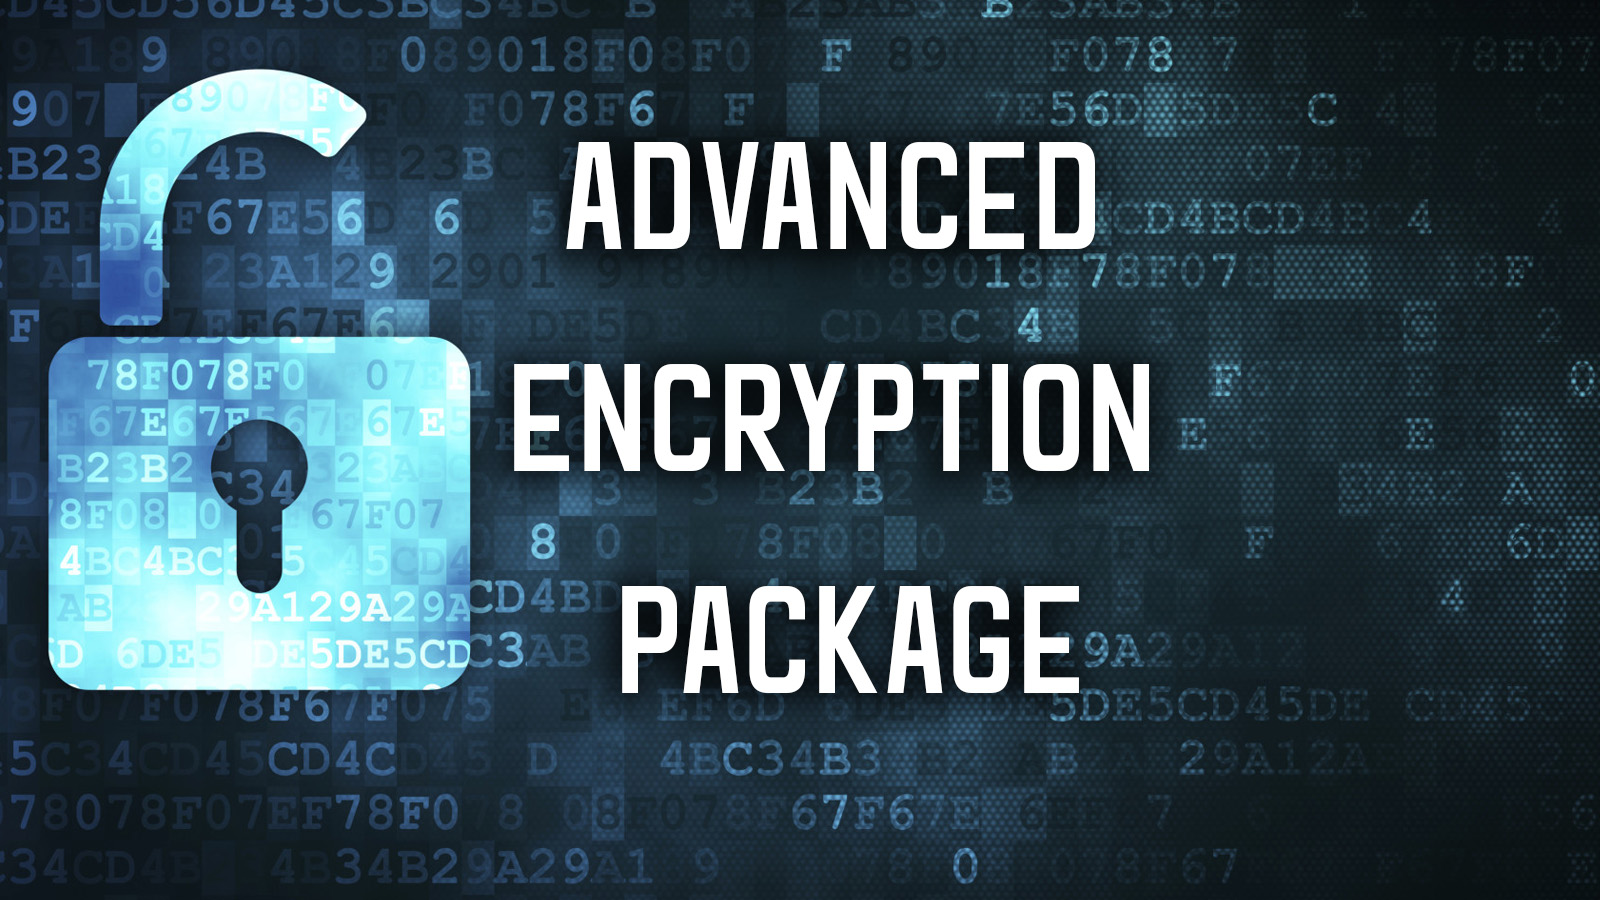 Advanced Encryption Package Security Tool